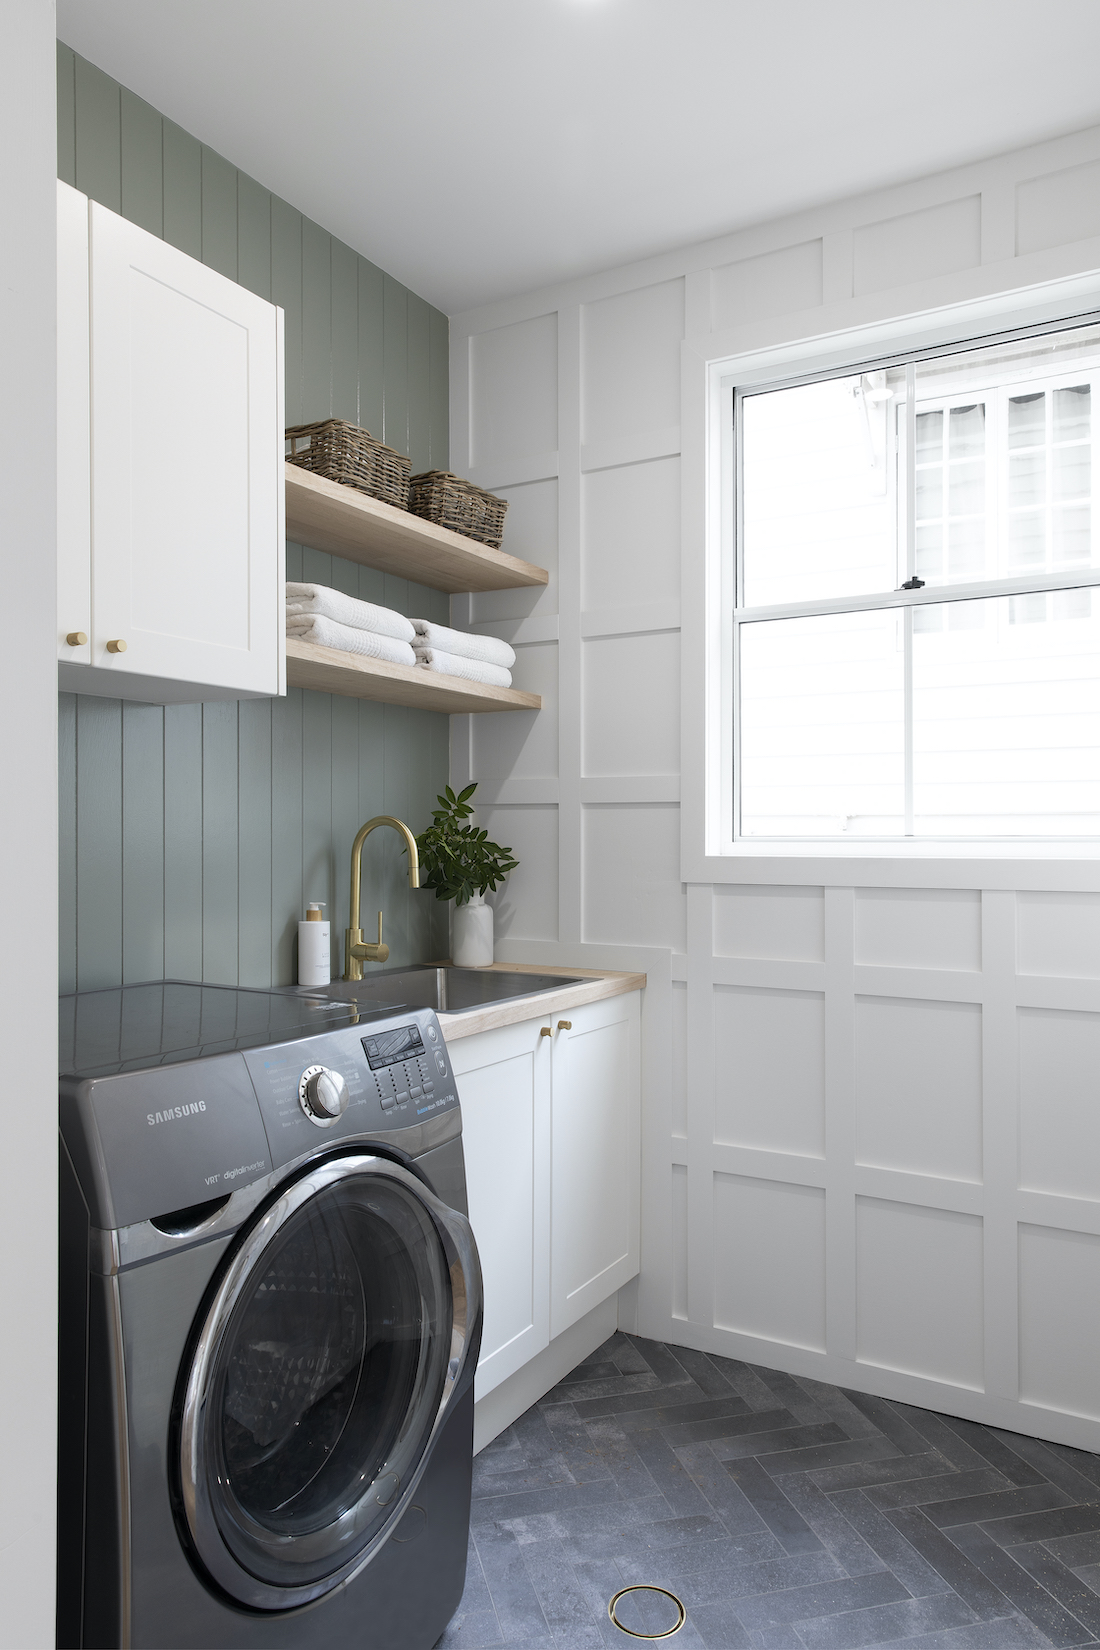 White wainscoat wall in laundry